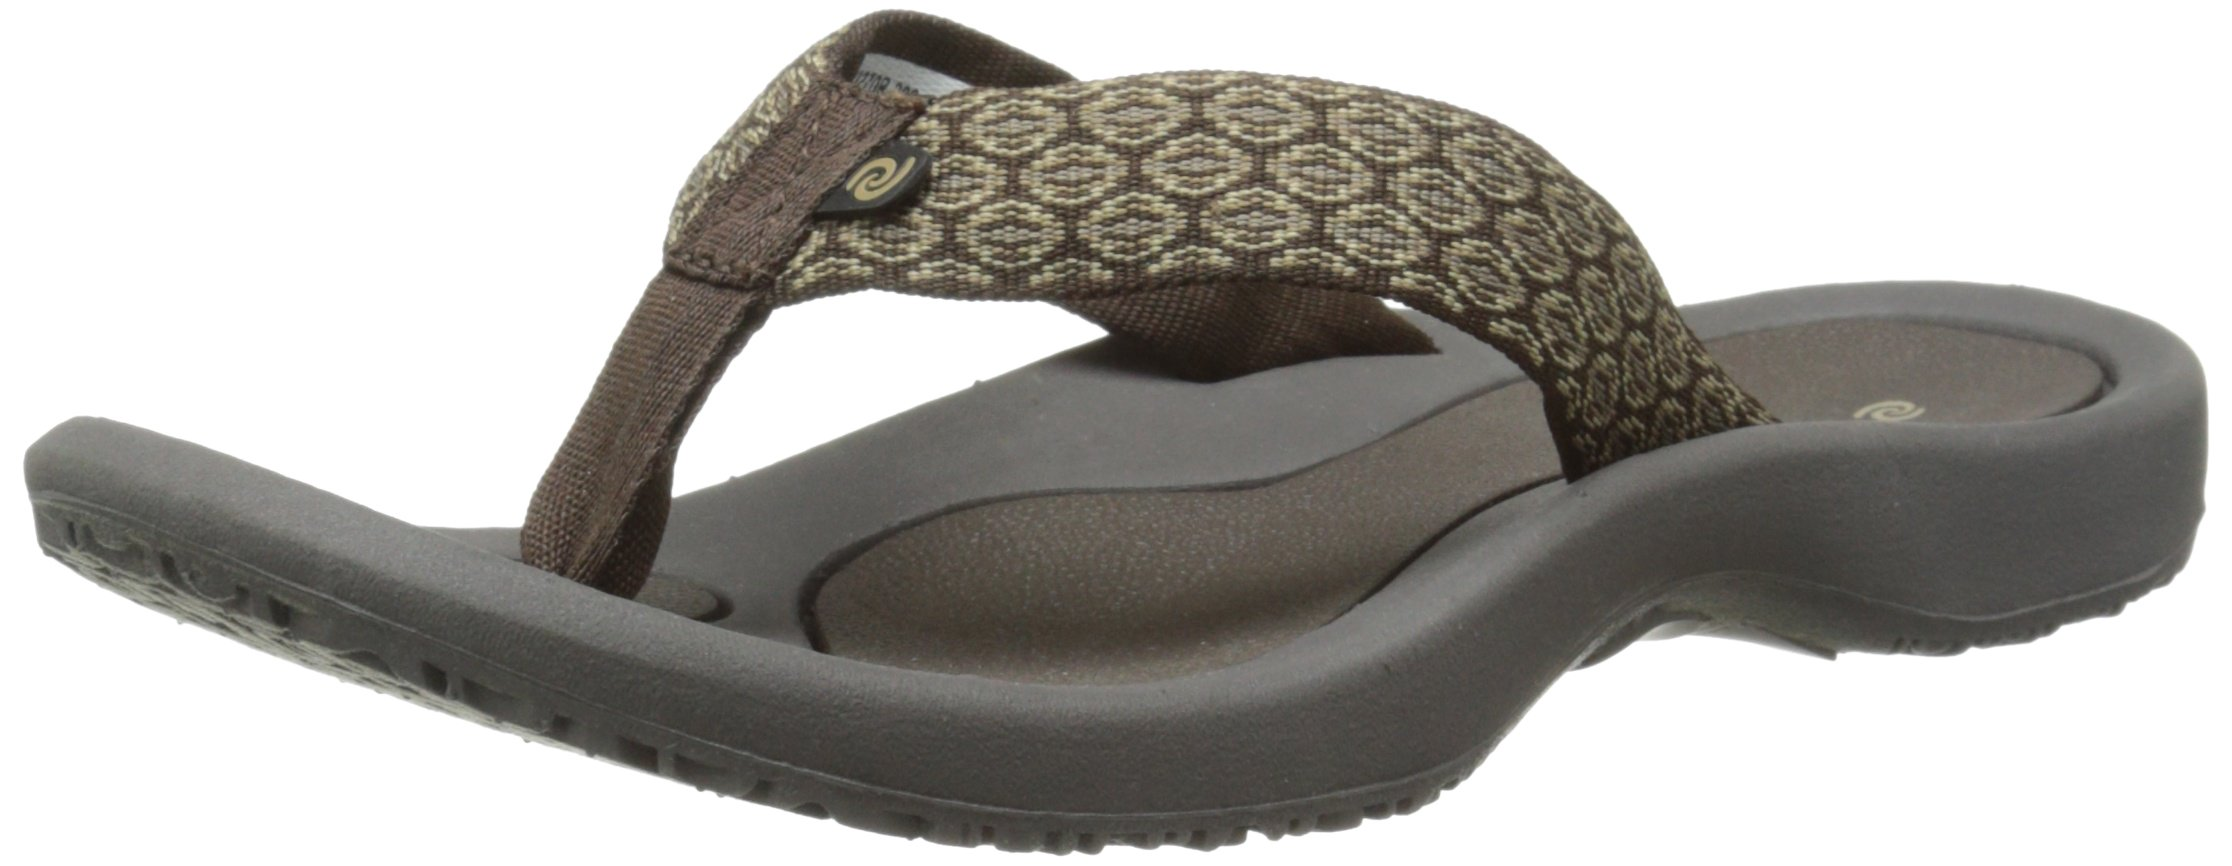 Rafters Women's Breeze Flip Flop